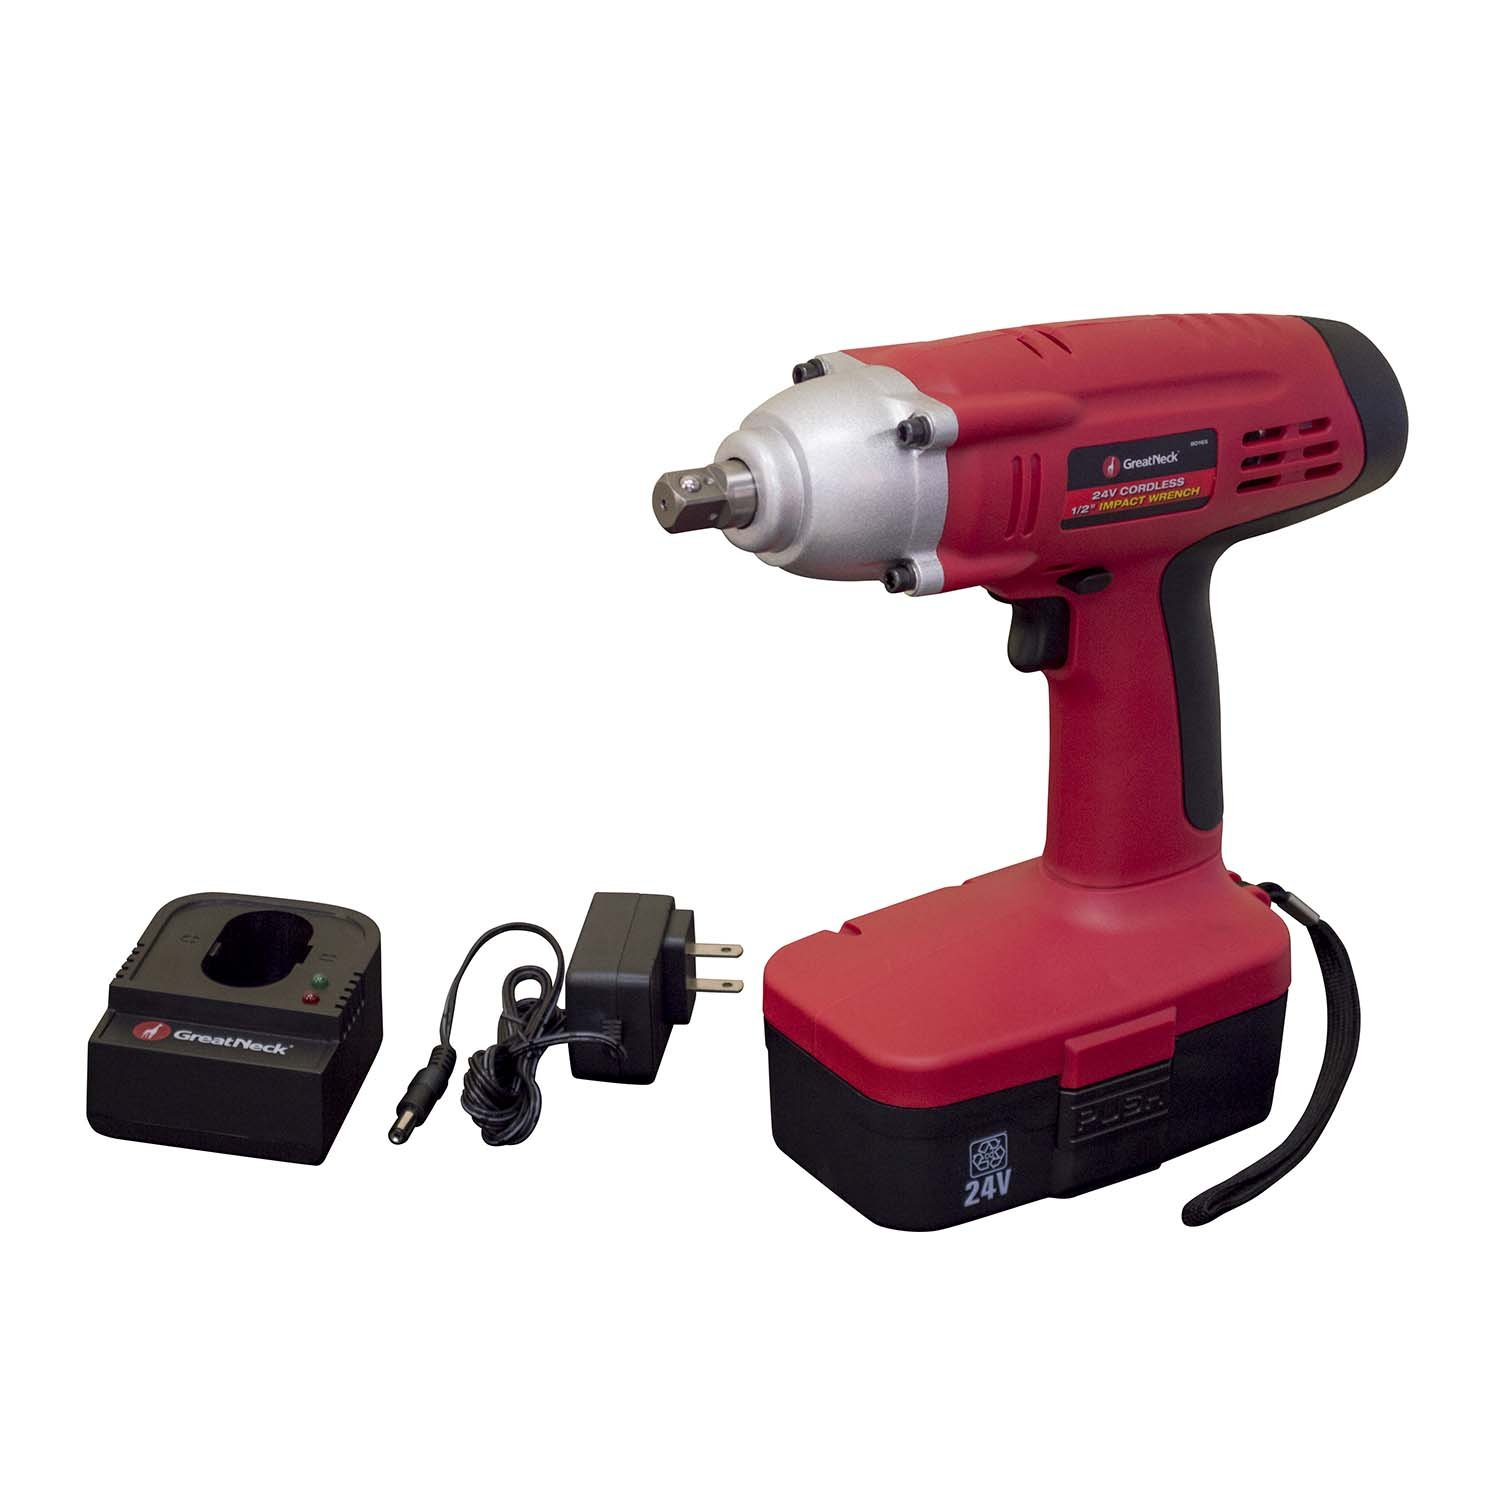 GreatNeck 24V Cordless 1/2 Drive Impact Wrench